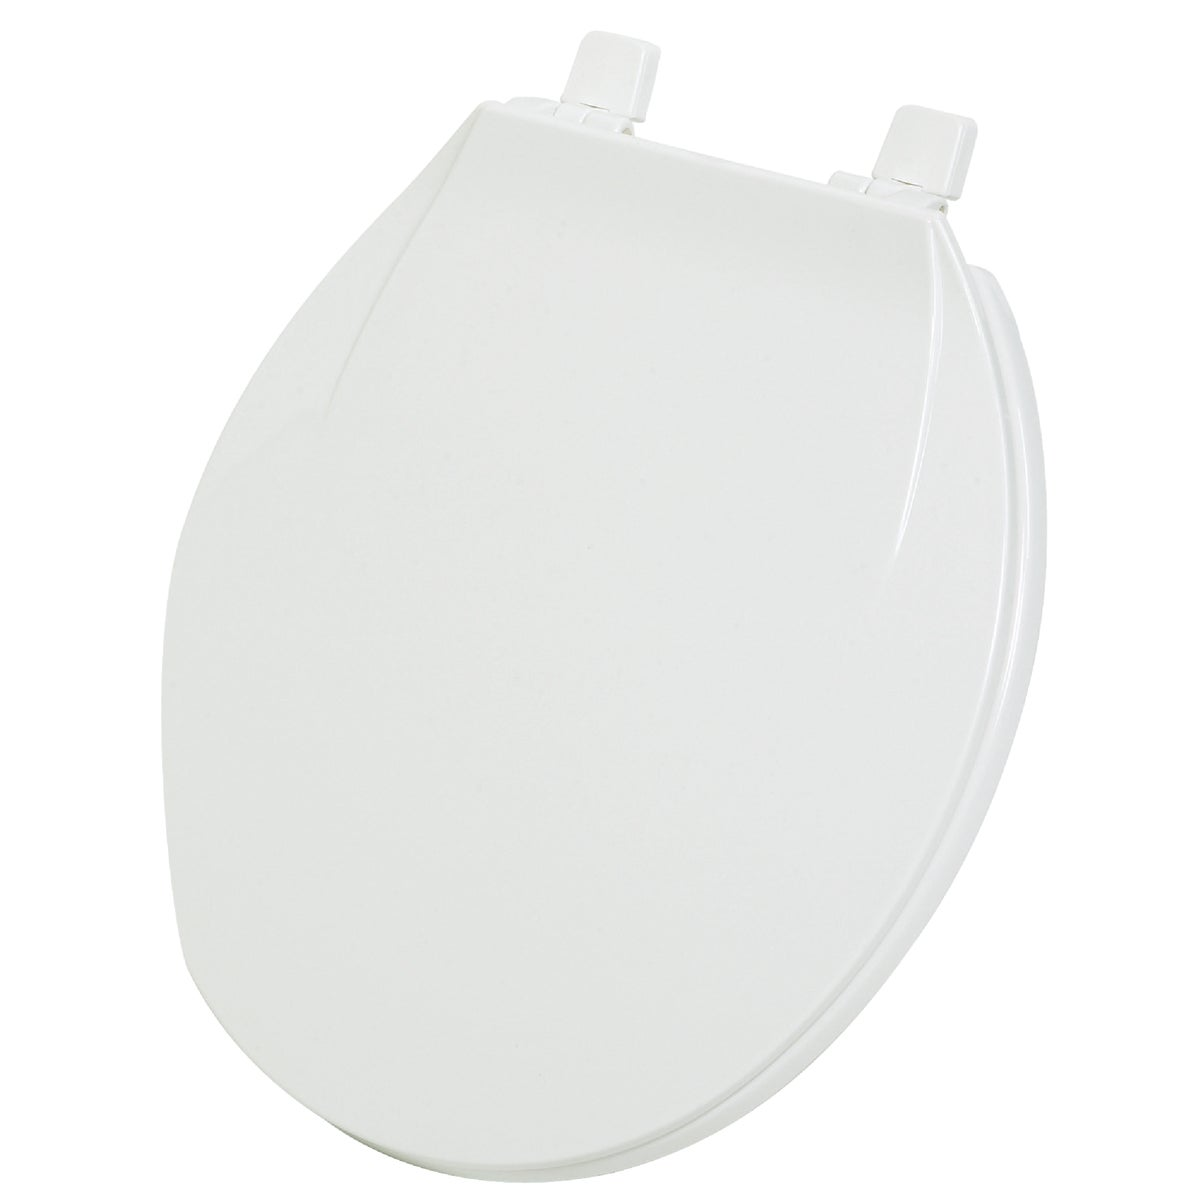 WHITE ROUND PLAS SEAT - 445352 by Do it Best